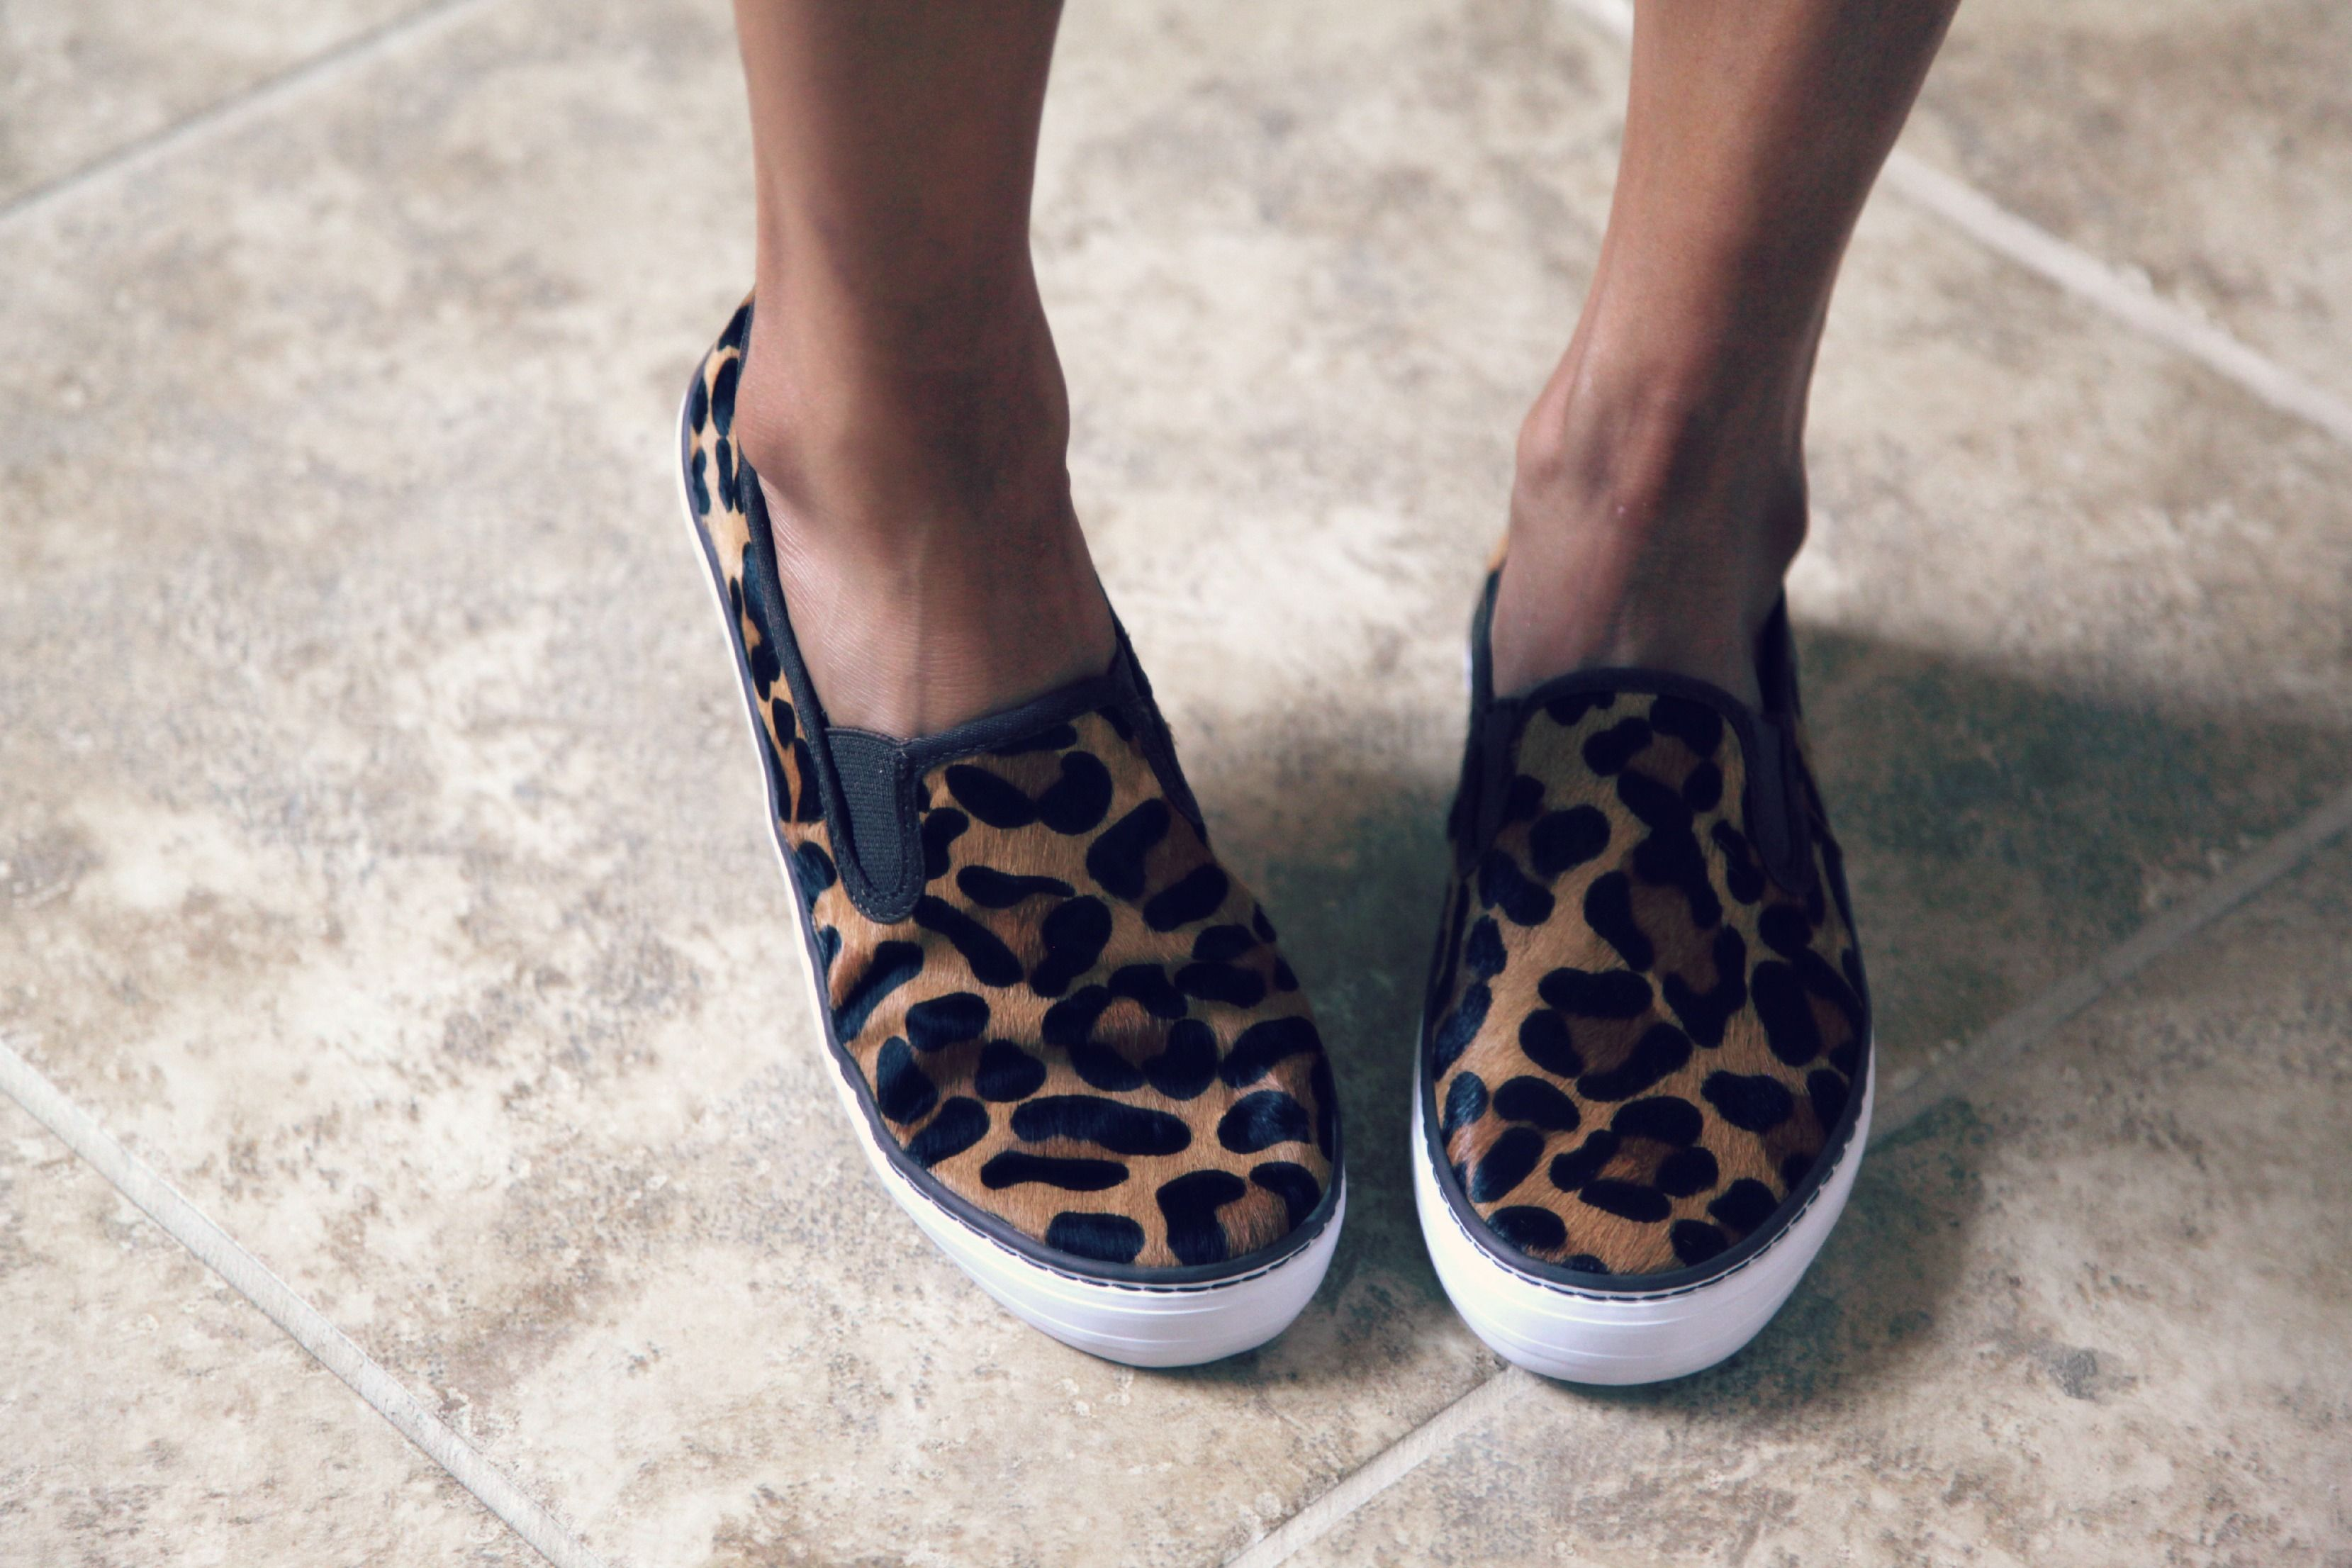 ef5bdf01 Leopard print calf hair slip on sneakers from The Gap   accessories ...